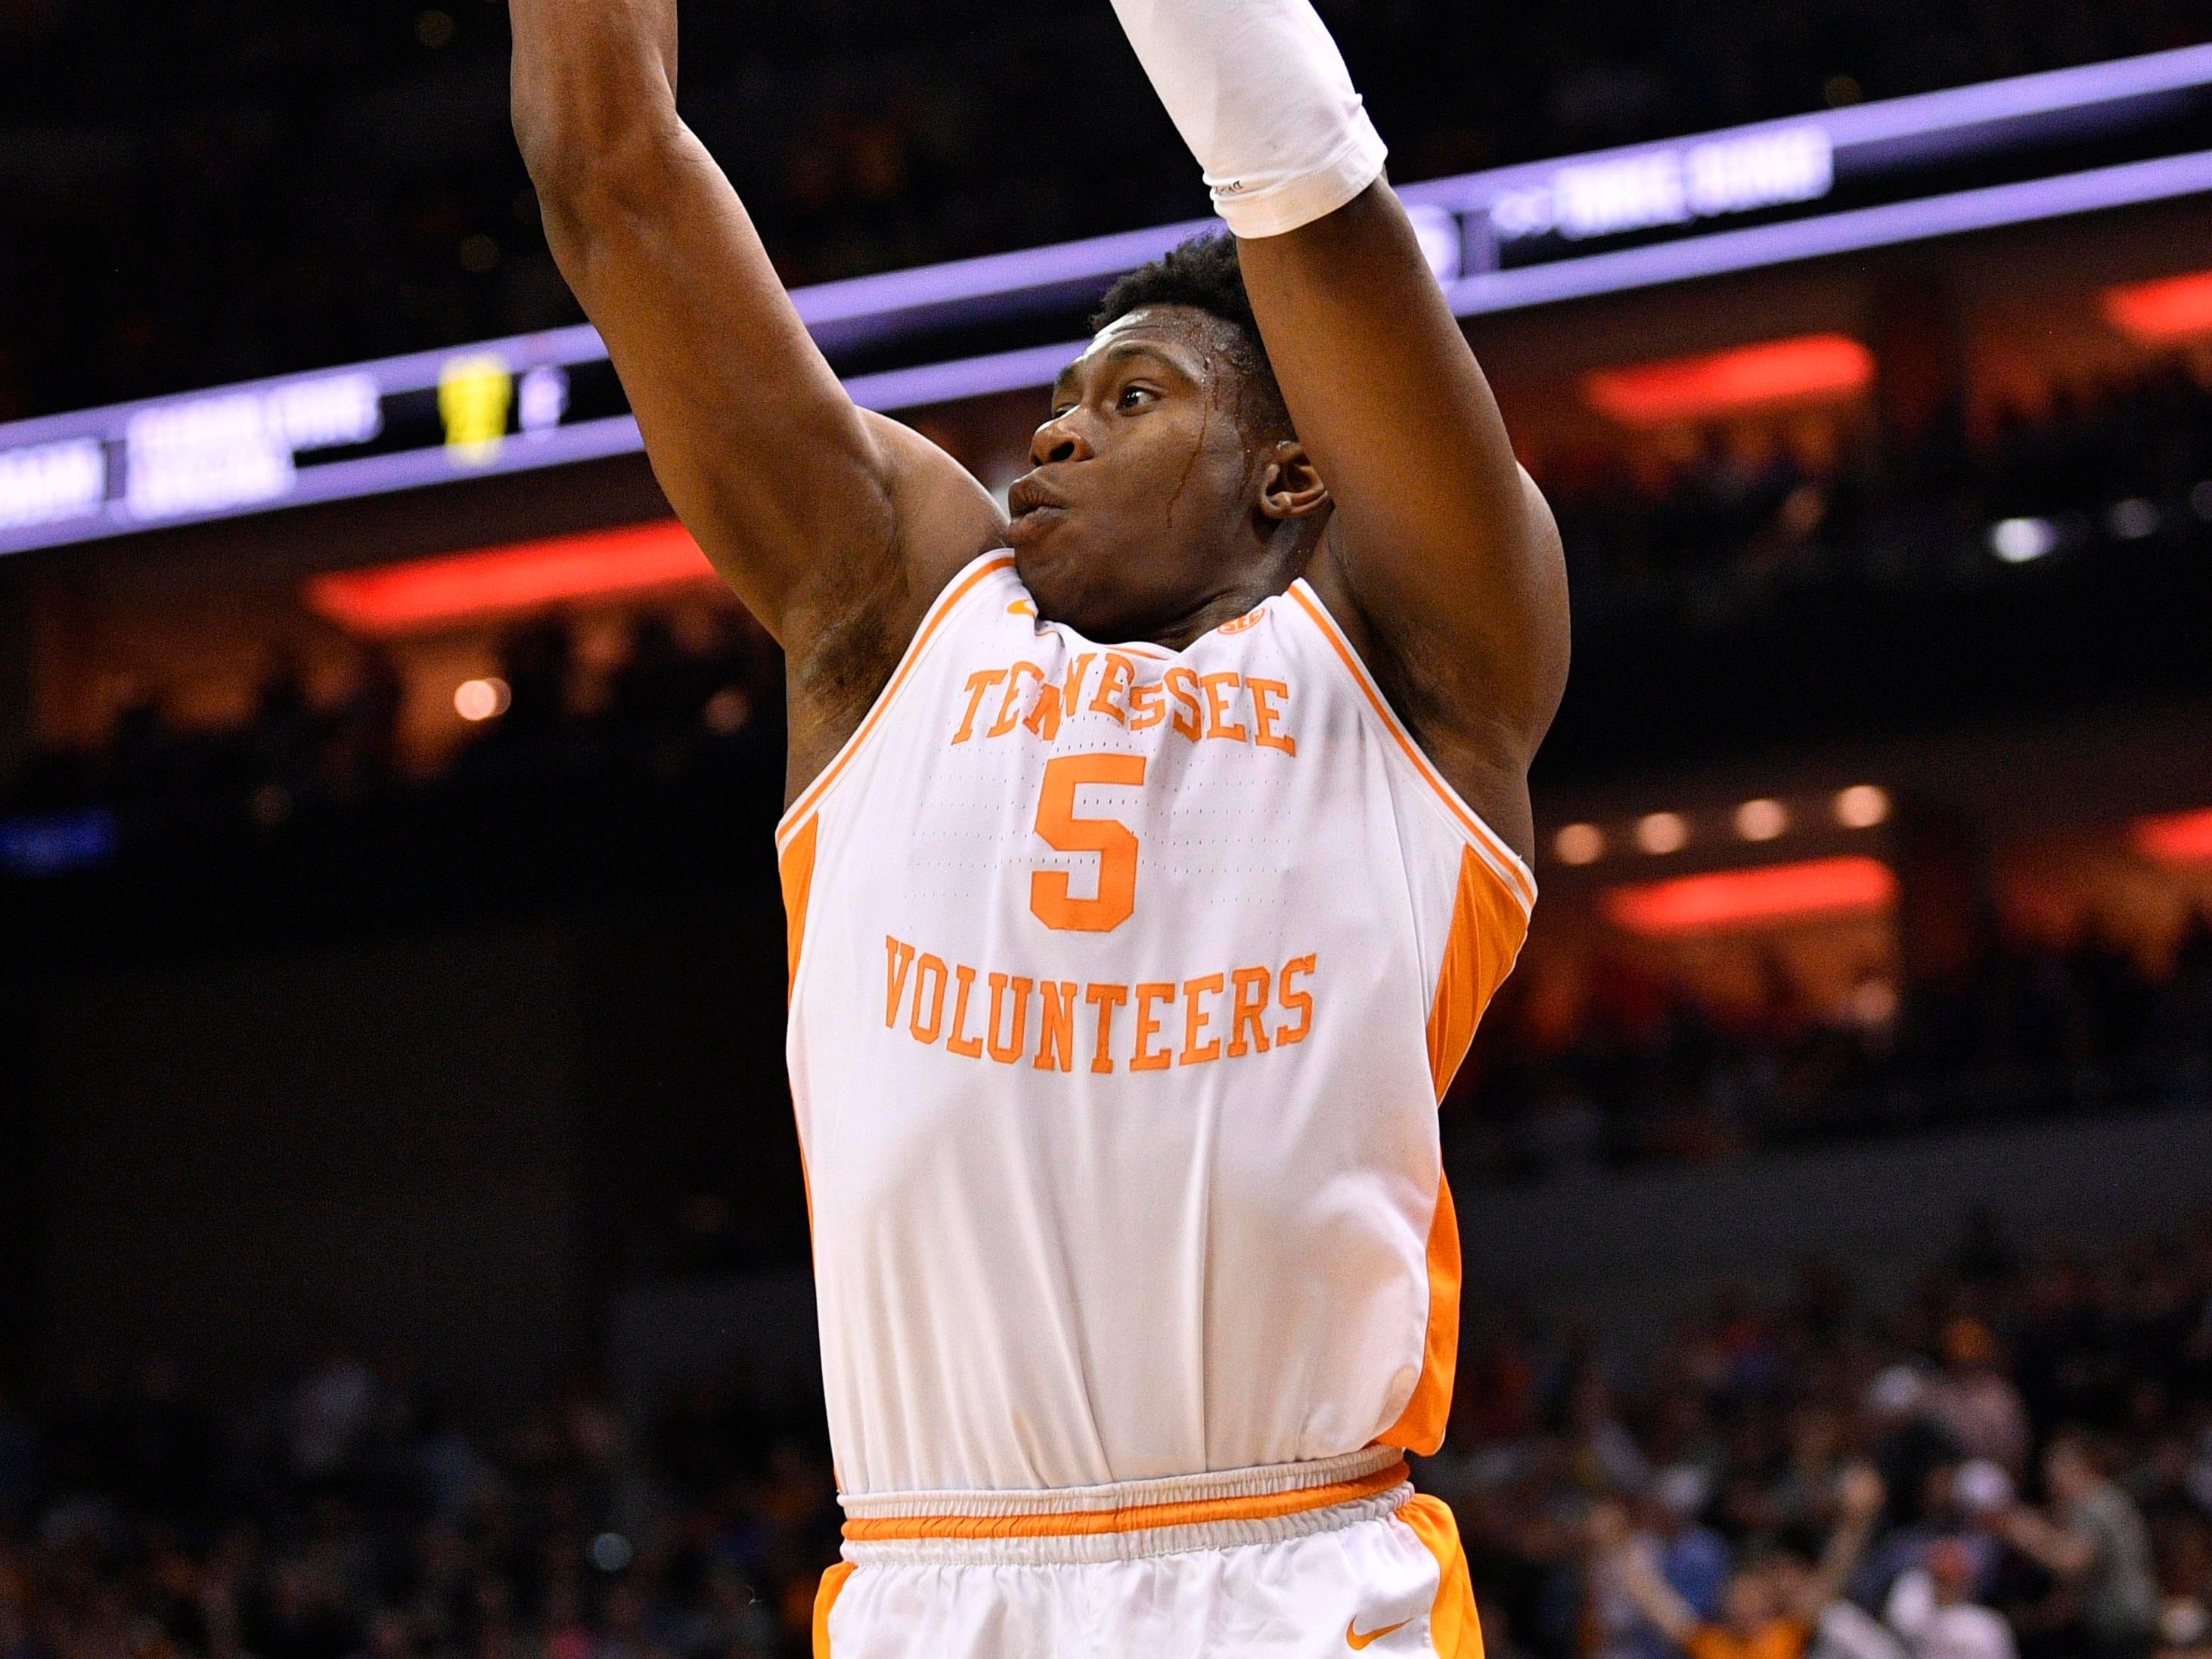 Mar 28, 2019; Louisville, KY, United States; Tennessee Volunteers guard Admiral Schofield (5) shoots during the second half in the semifinals of the south regional against the Purdue Boilermakers of the 2019 NCAA Tournament at KFC Yum Center. Mandatory Credit: Jamie Rhodes-USA TODAY Sports